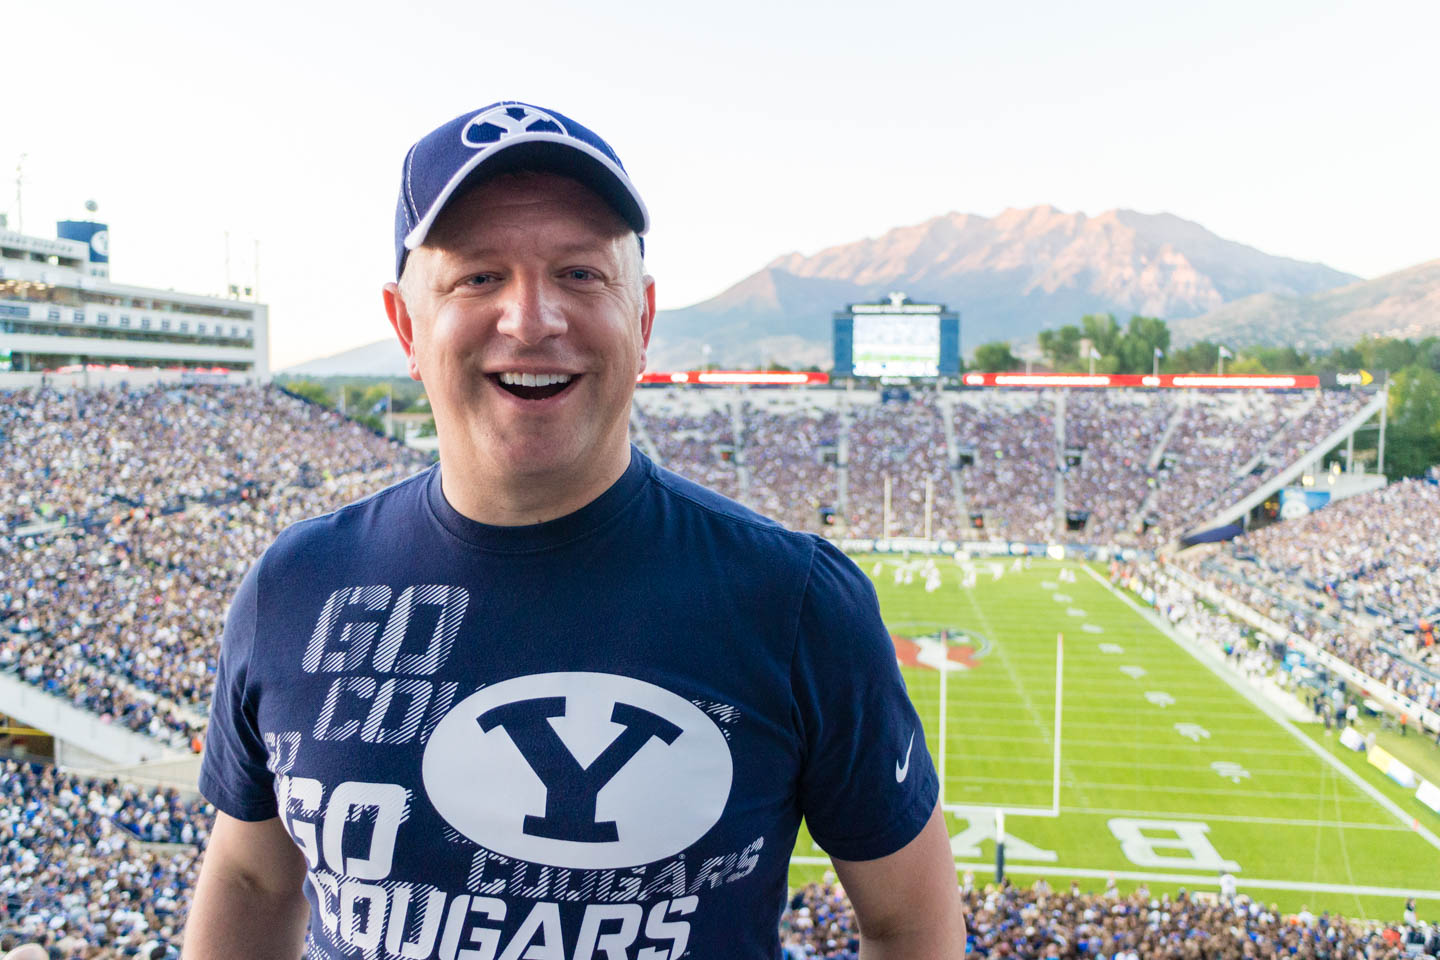 dav.d at BYU's first home game this year against Houston